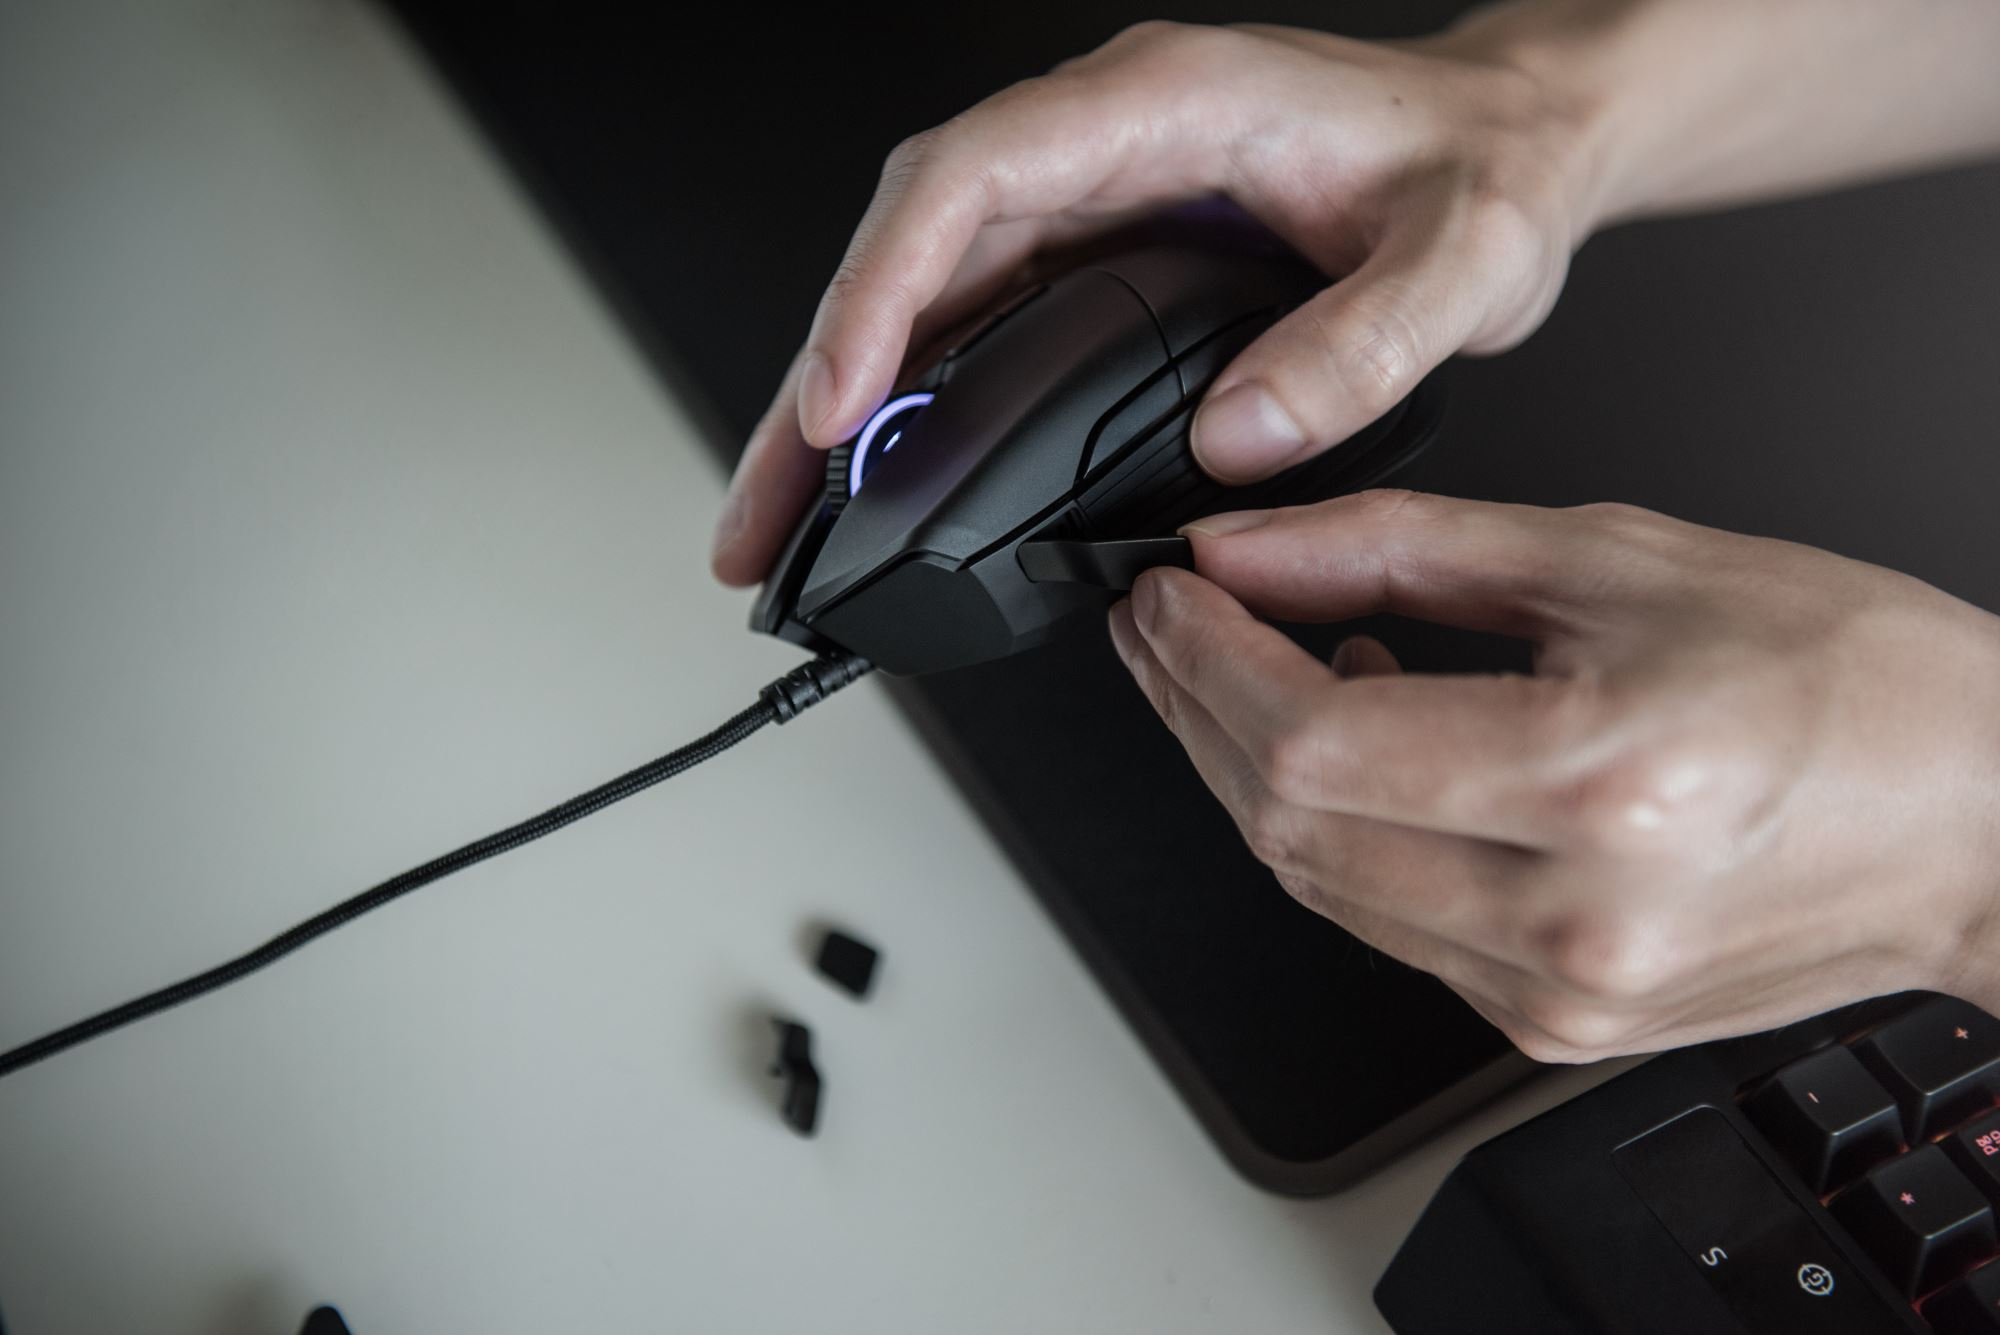 Razer has a new mouse designed specifically for FPS games